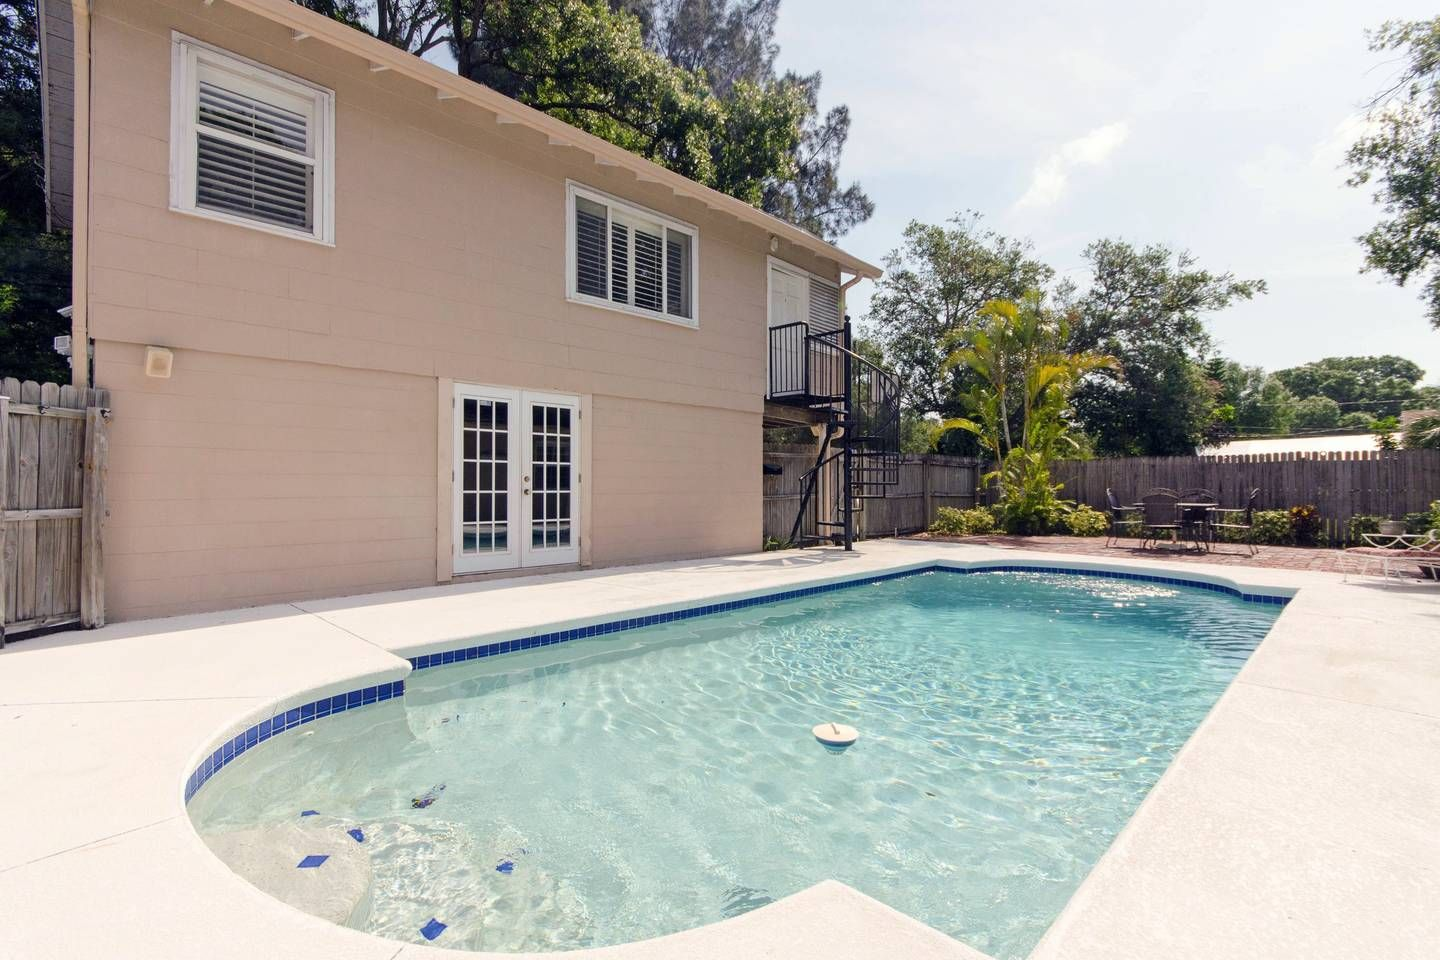 Carriage house in north st pete guesthouses for rent in